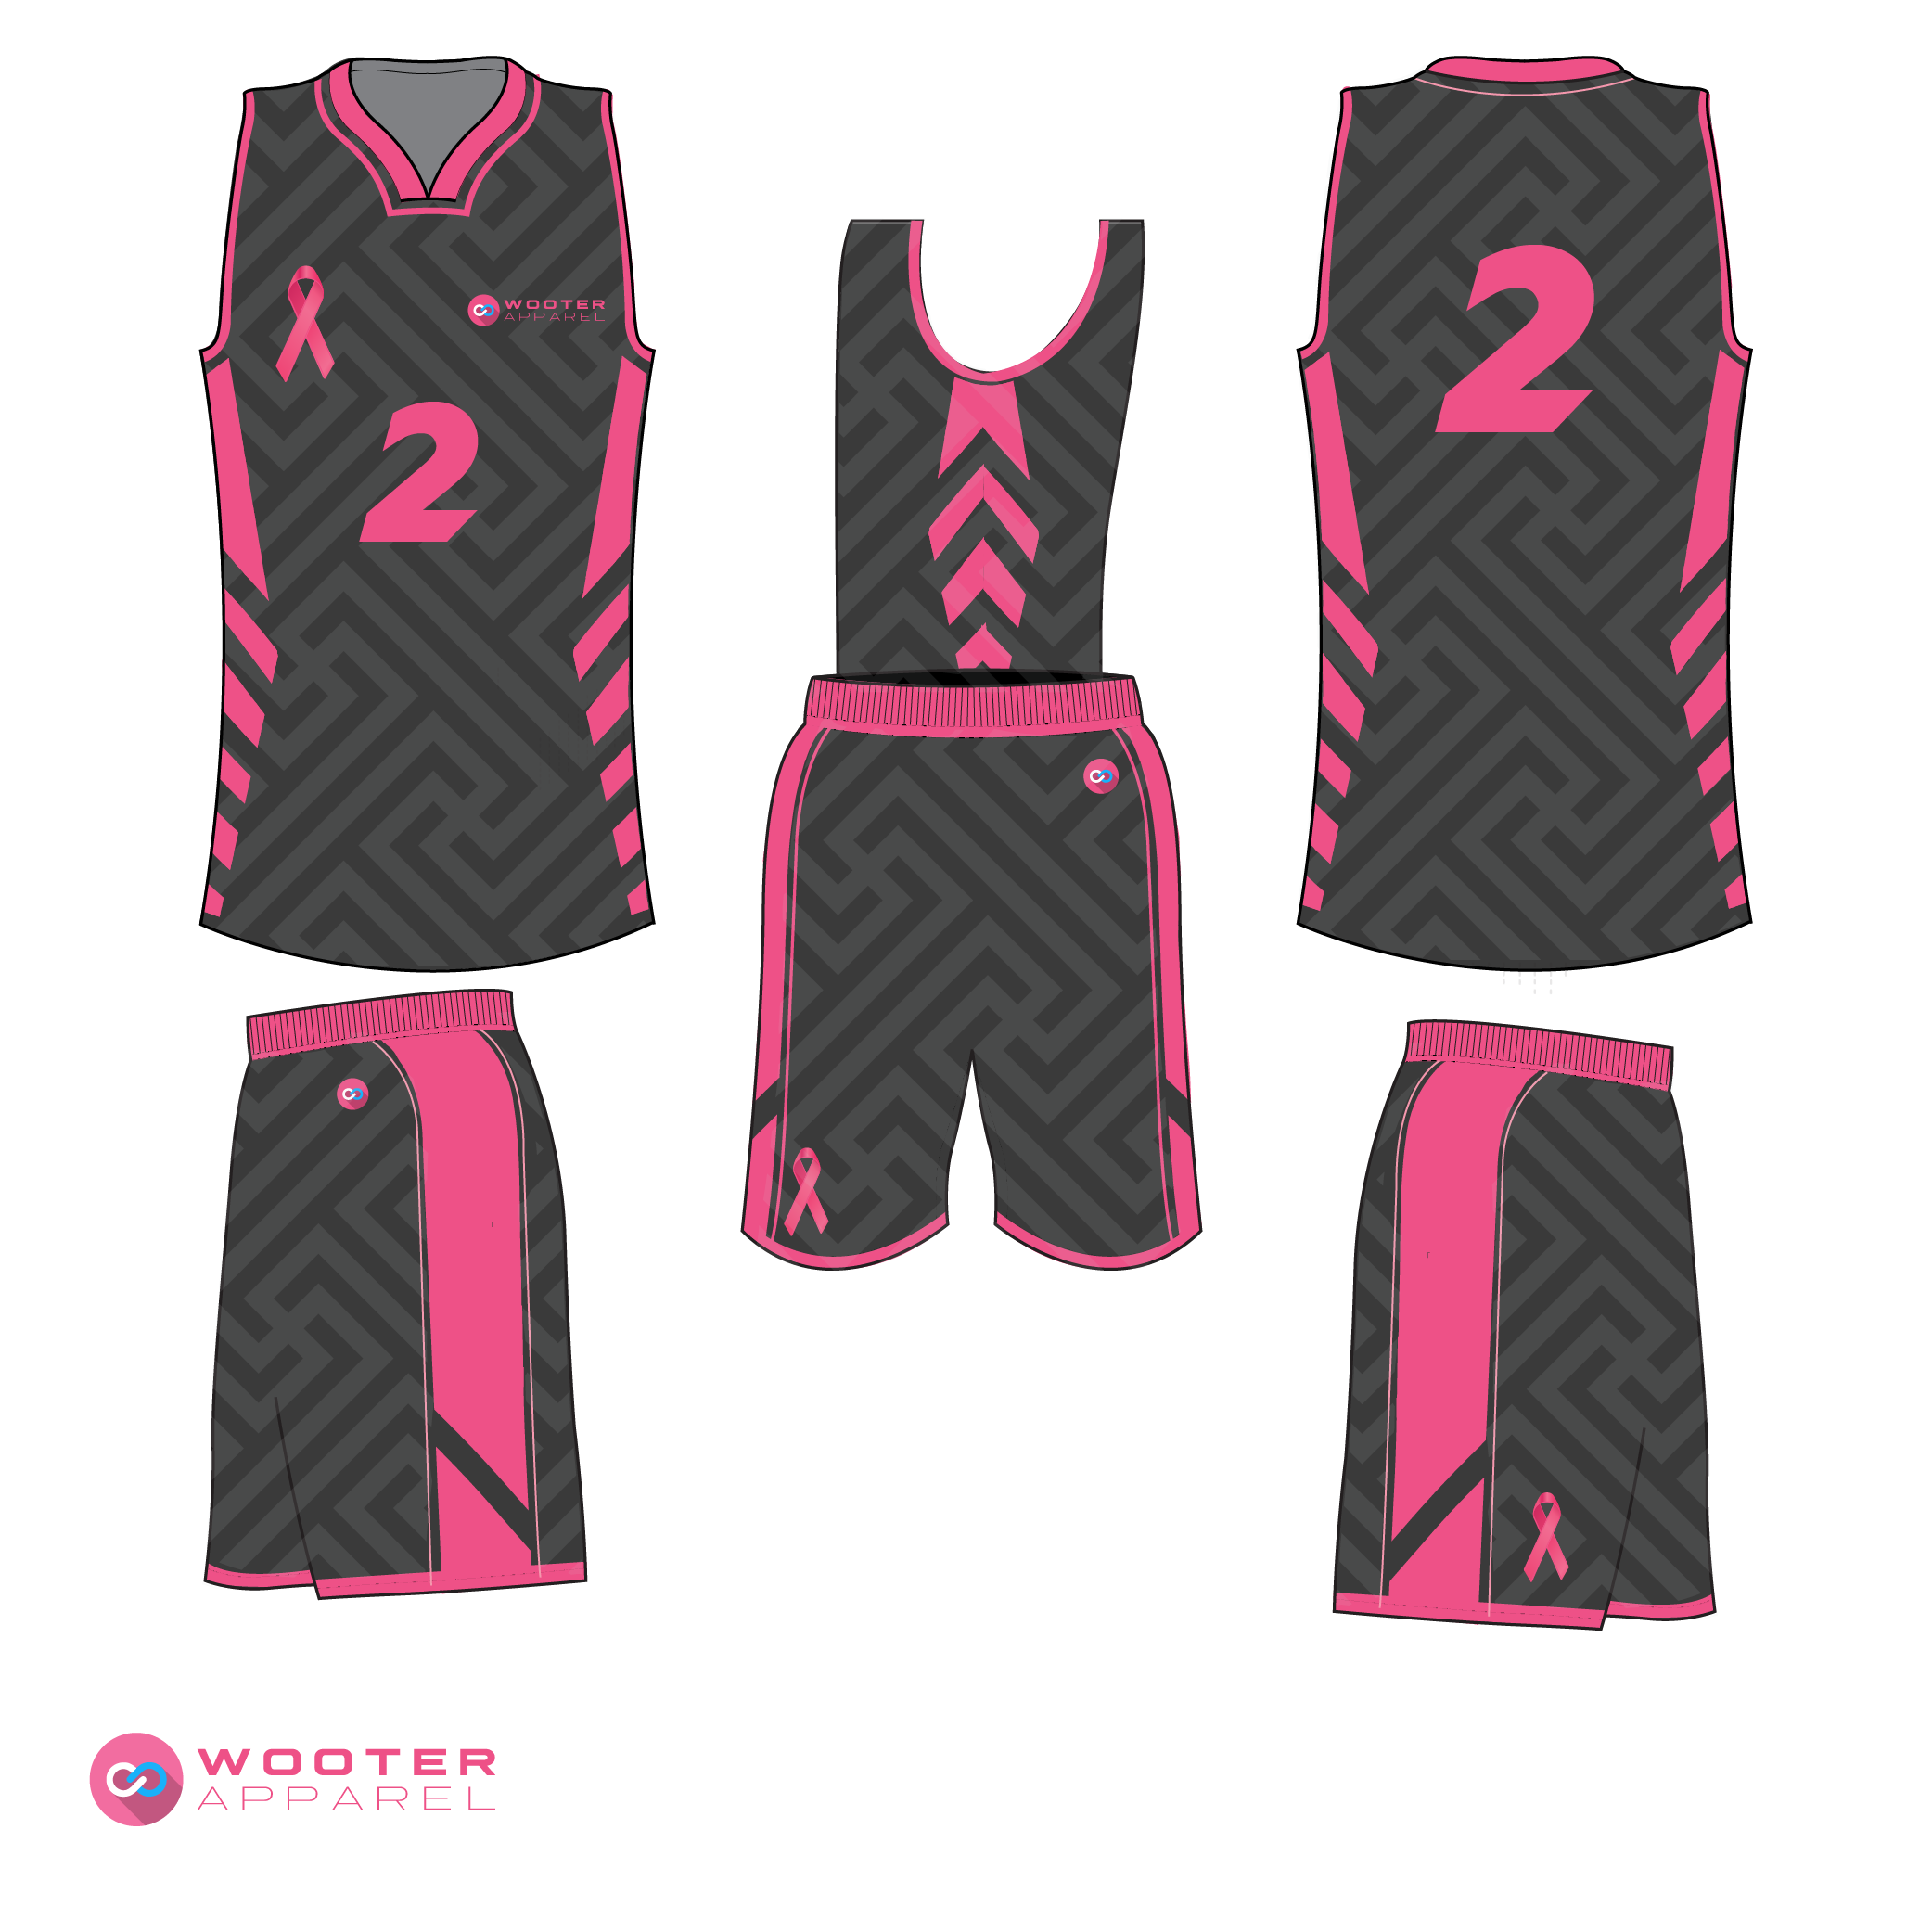 wooter breast cancer charity series basketball version gray-03.png